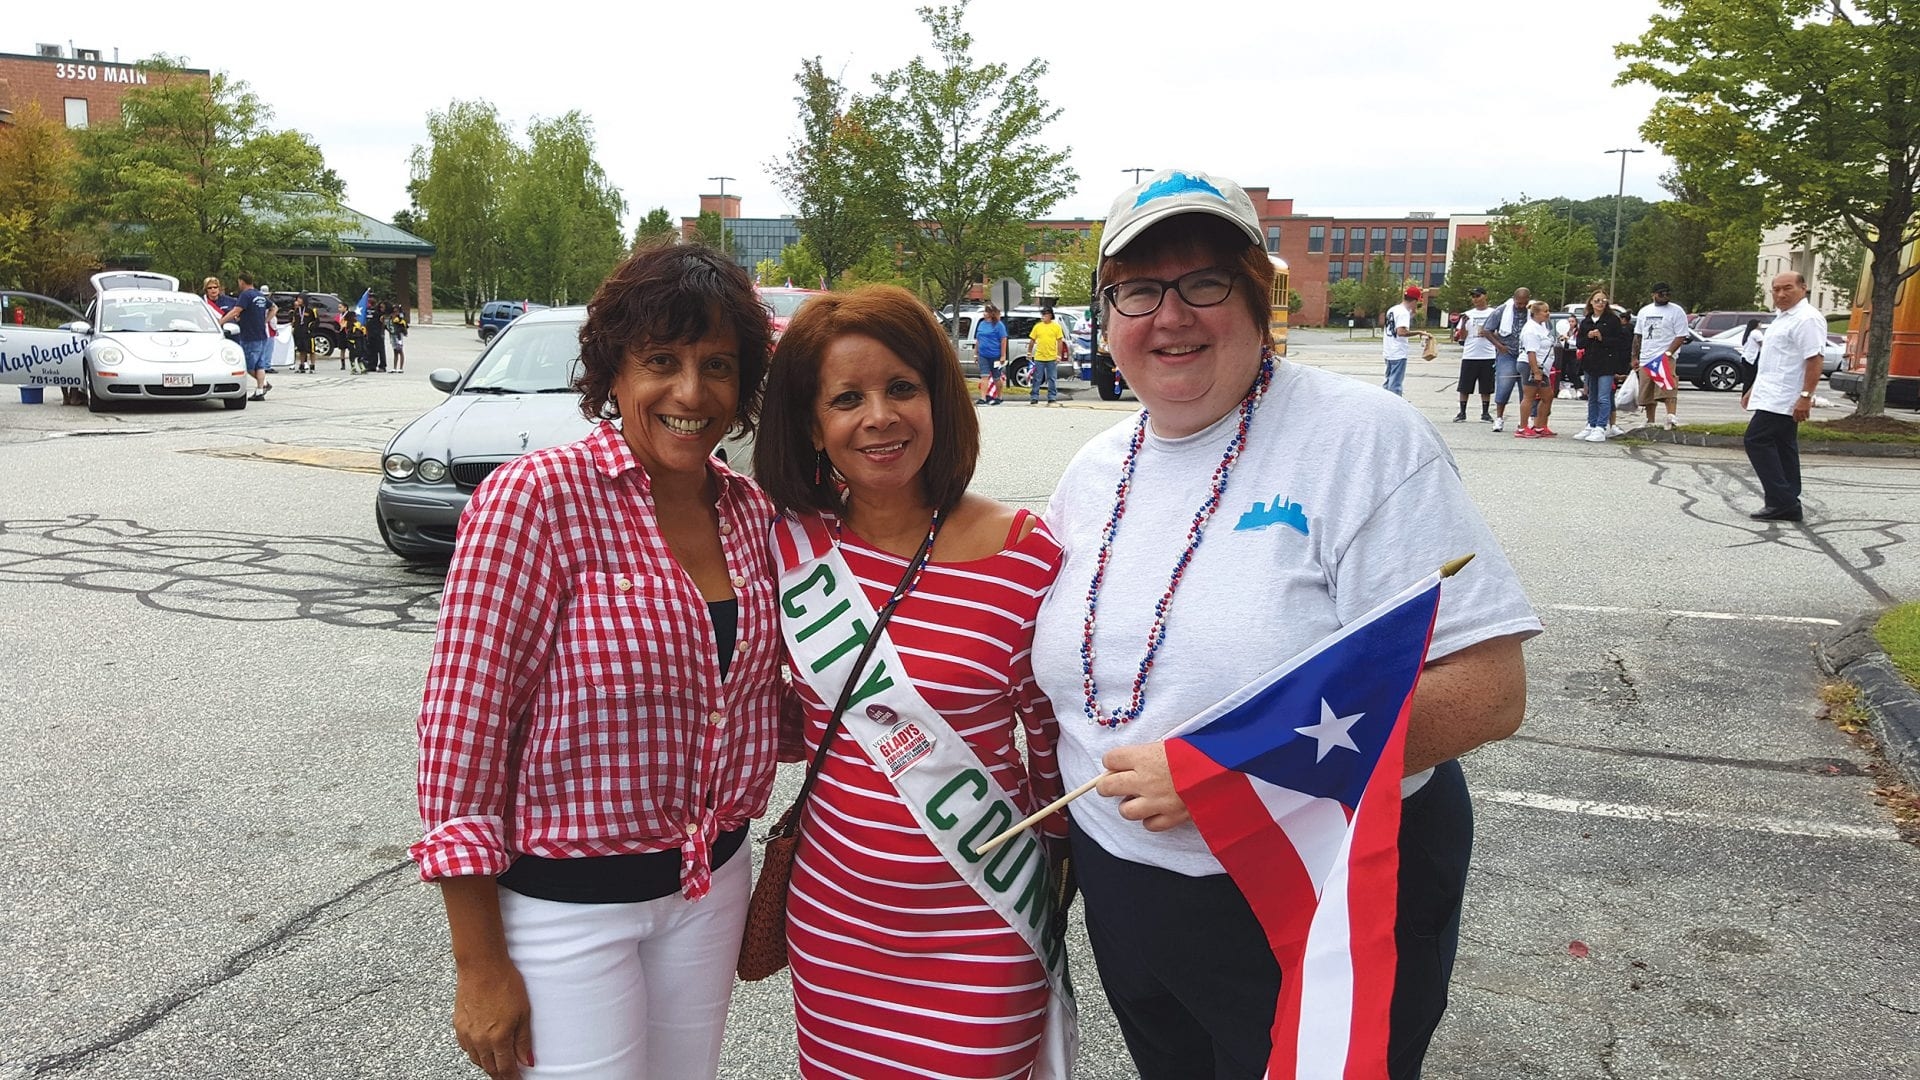 Jean Canosa Albano, right, with friends Maria Acuna, a Realtor, and Holyoke City Councilor Gladys Lebron, at the 2015 Puerto Rican Parade.